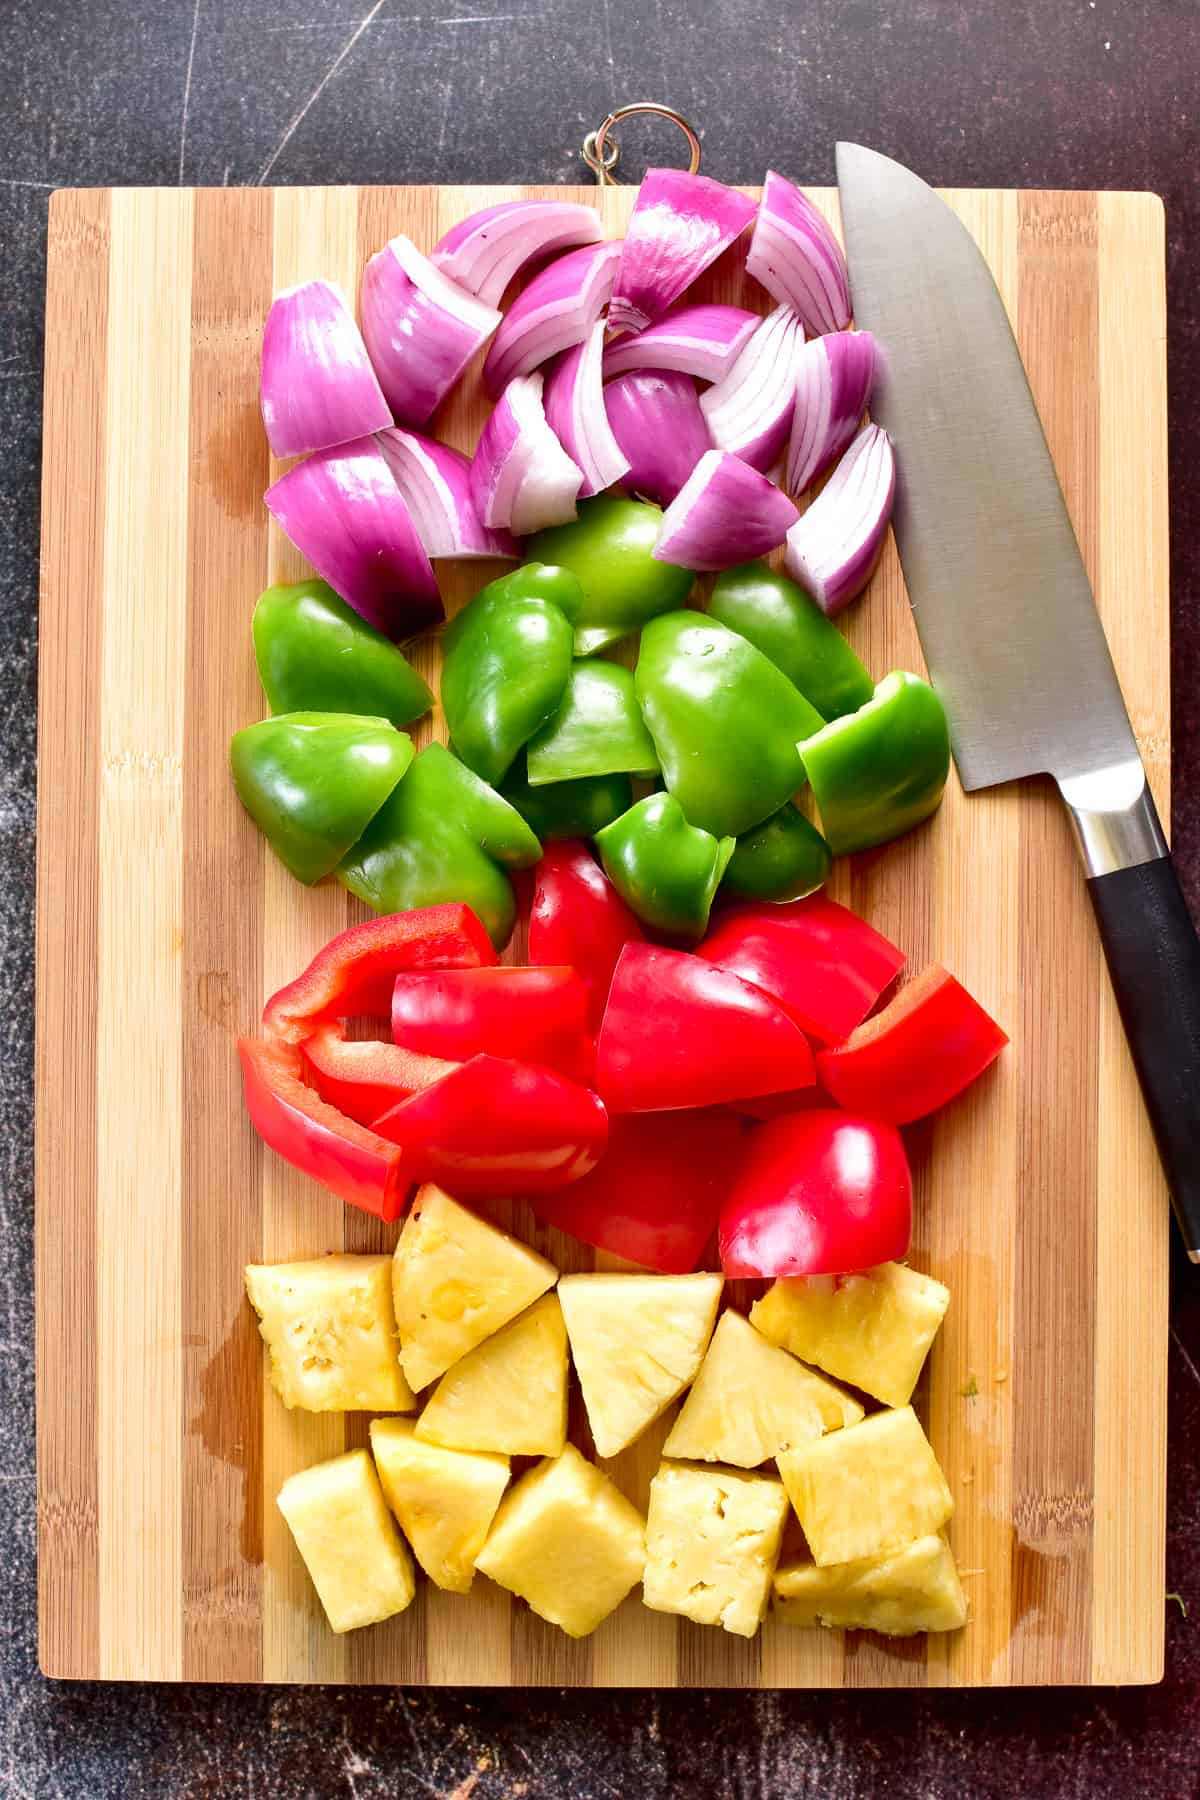 Overhead shot of peppers, onions, and pineapple chopped on a cutting board